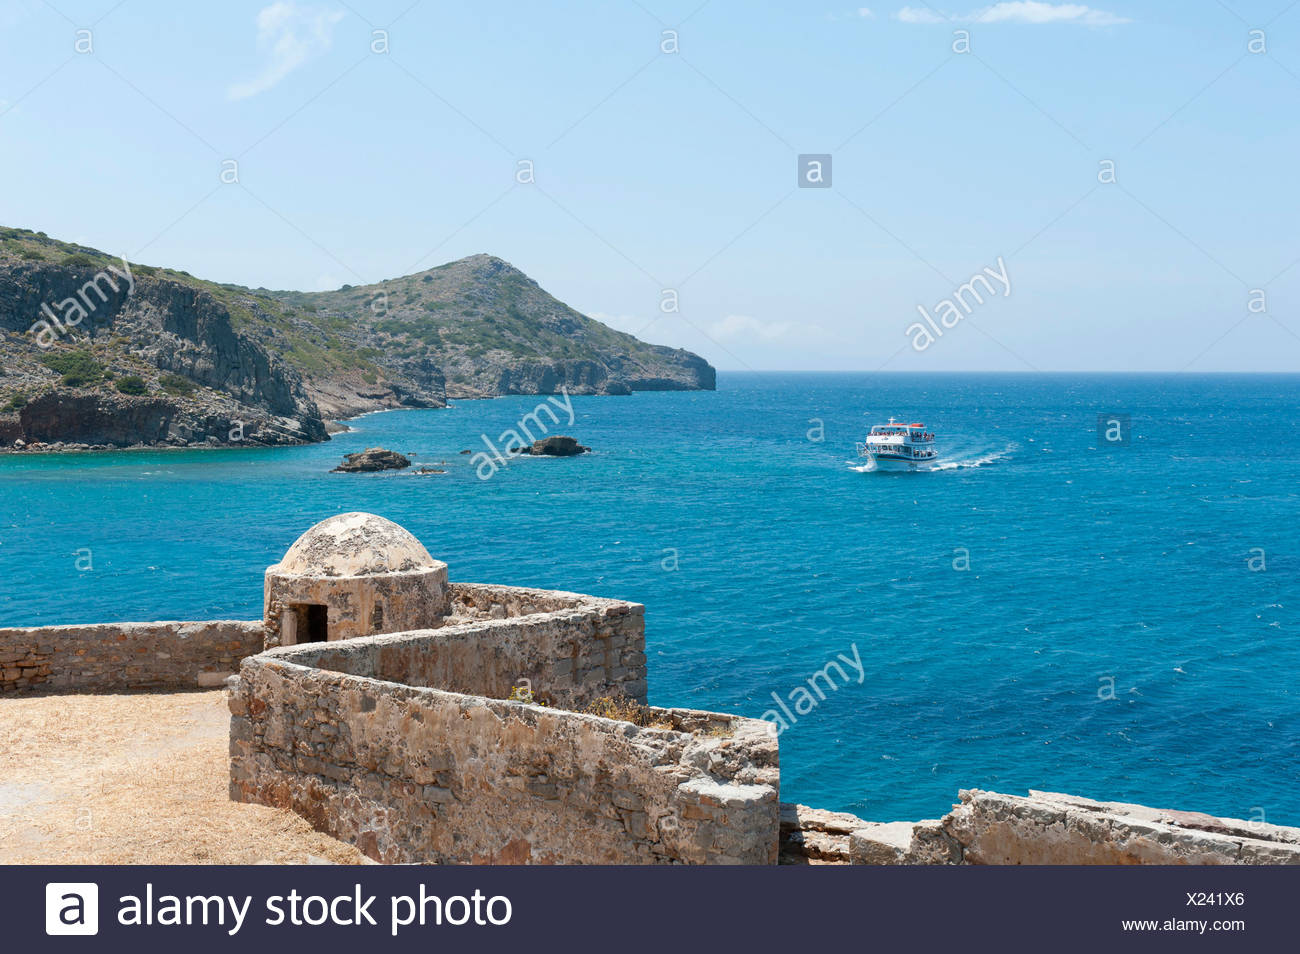 Old Venetian bastion, Spinalonga, Kalydon near Elounda, Gulf of Mirabello, Crete, Greece, Mediterranean, Europe - Stock Image